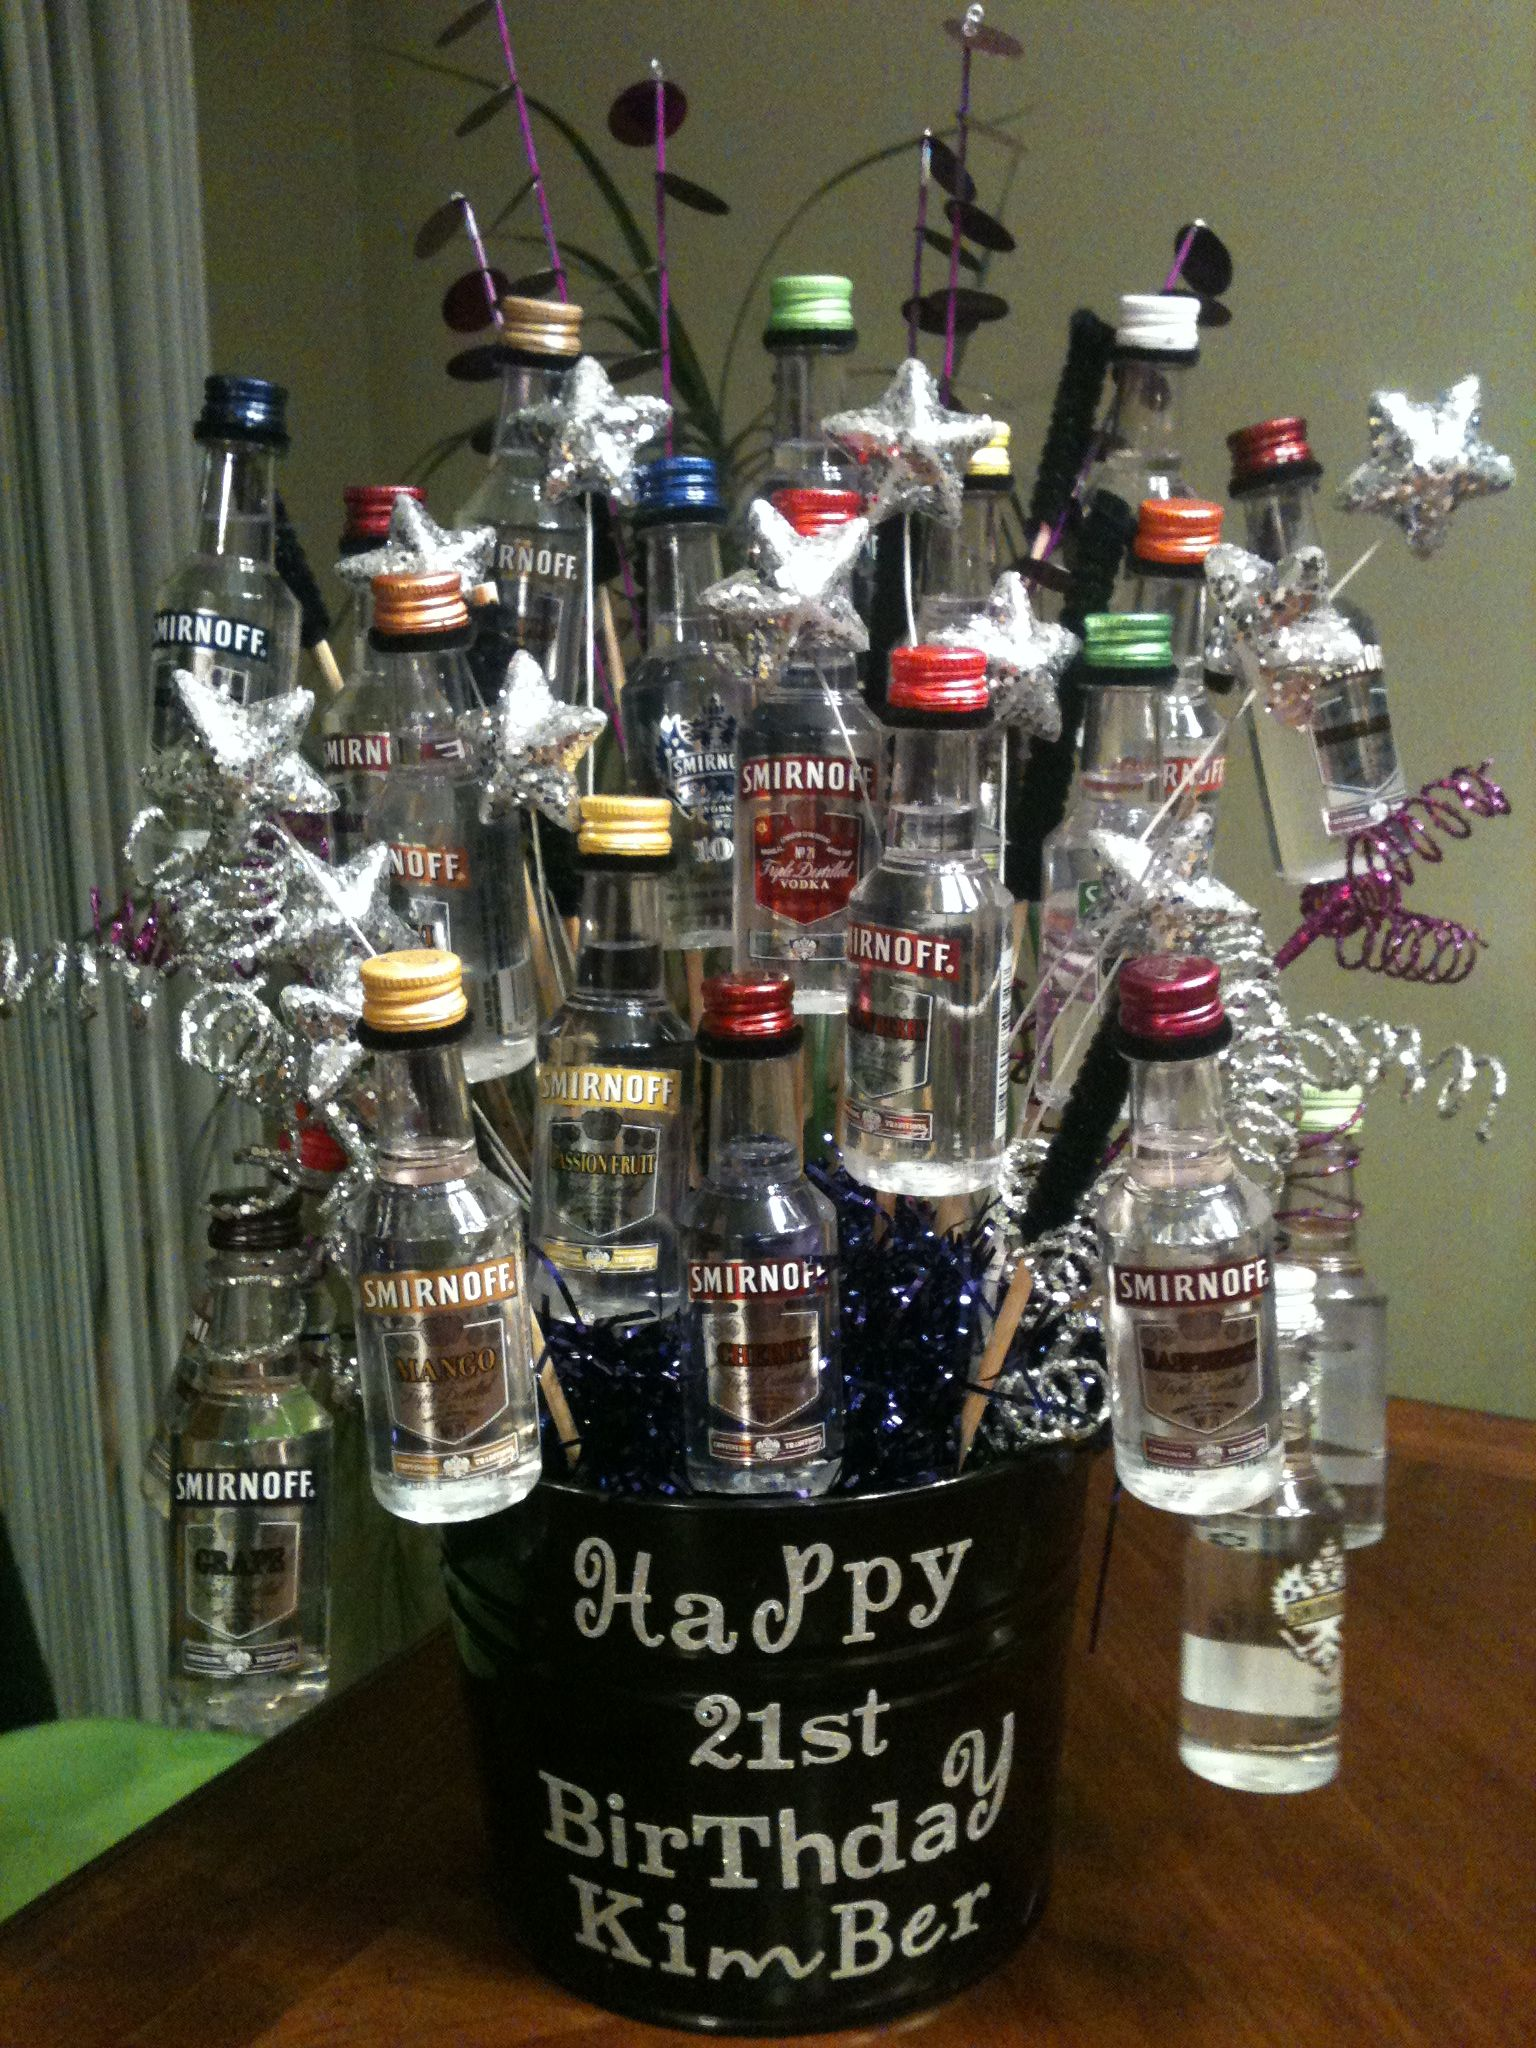 Pin By Tracey Gradwell On Gift Giving Ideas 21st Birthday Gifts Birthday Shots 21st Birthday Decorations